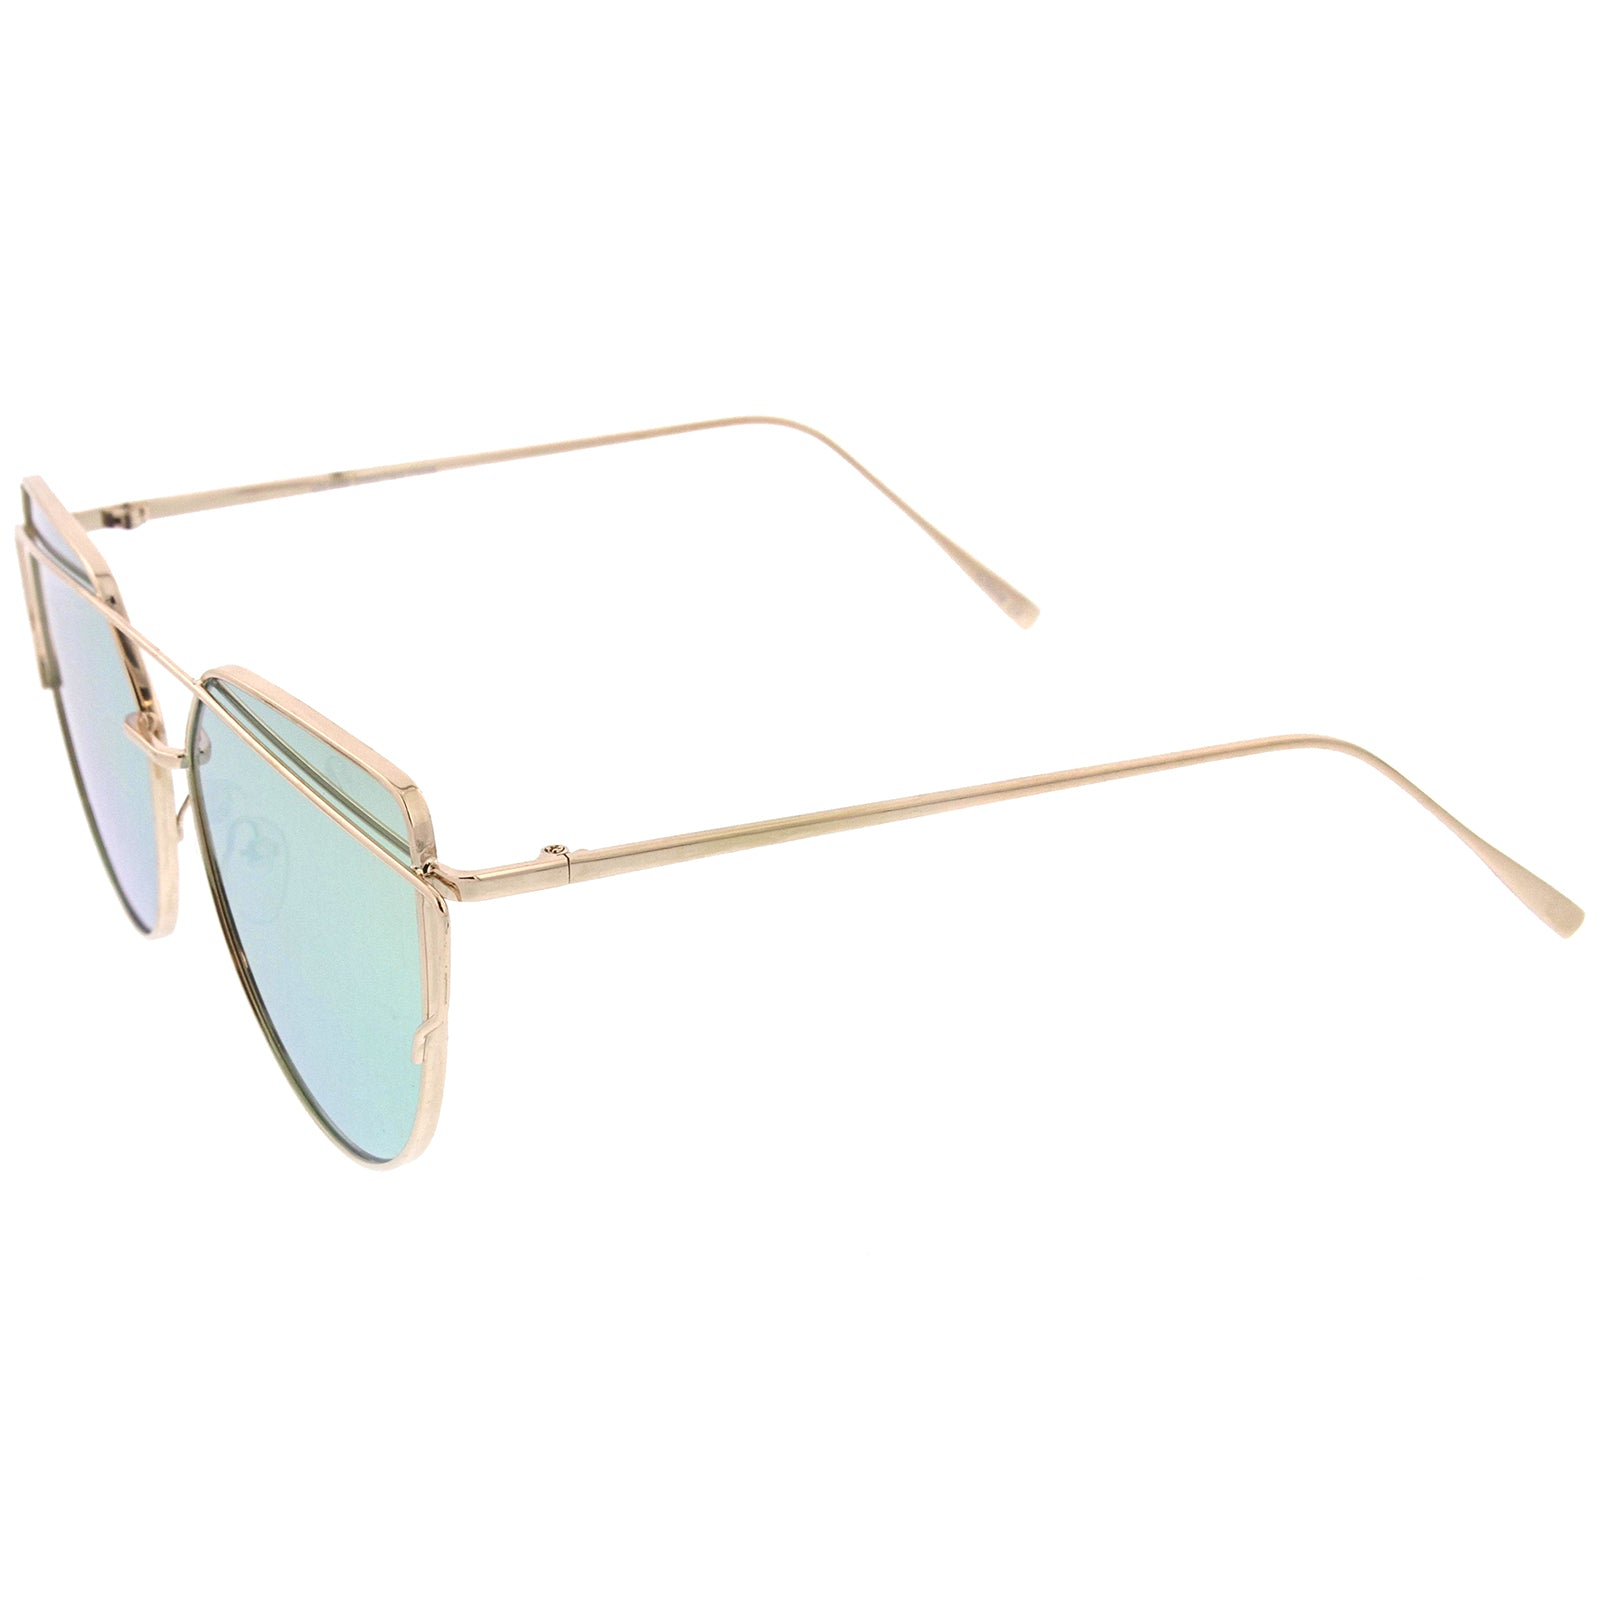 Oversize Metal Frame Thin Temple Color Mirror Flat Lens Aviator Sunglasses 62mm - sunglass.la - 23